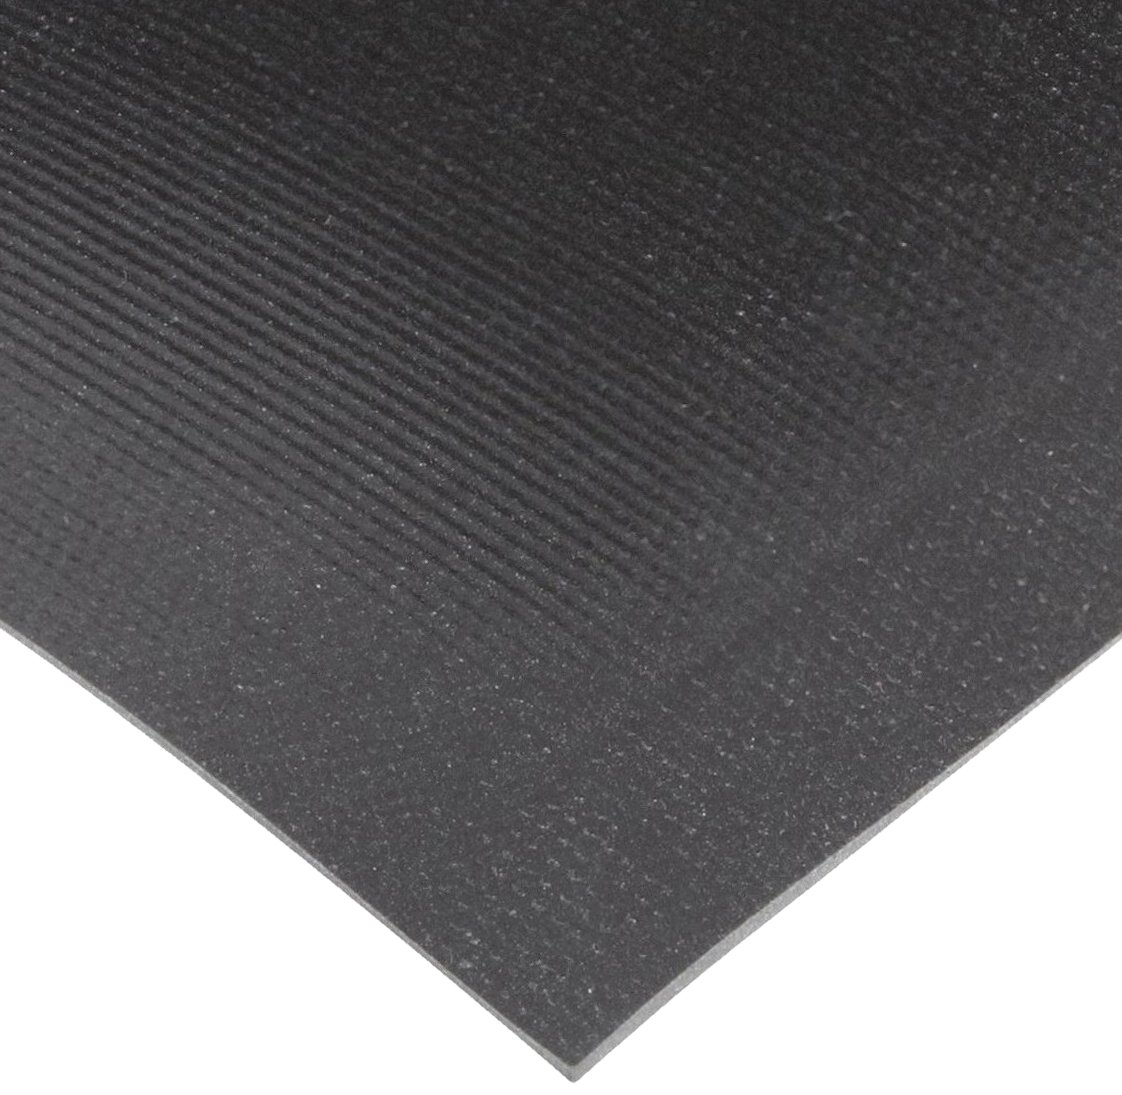 Gray 3/' Width x 5/' Length x 5//16 Thickness Superior Manufacturing 141S0035GY 3 Width x 5 Length x 5//16 Thickness for Main Entranceways and Heavy Traffic Areas Notrax 141 Ovation Entrance Mat